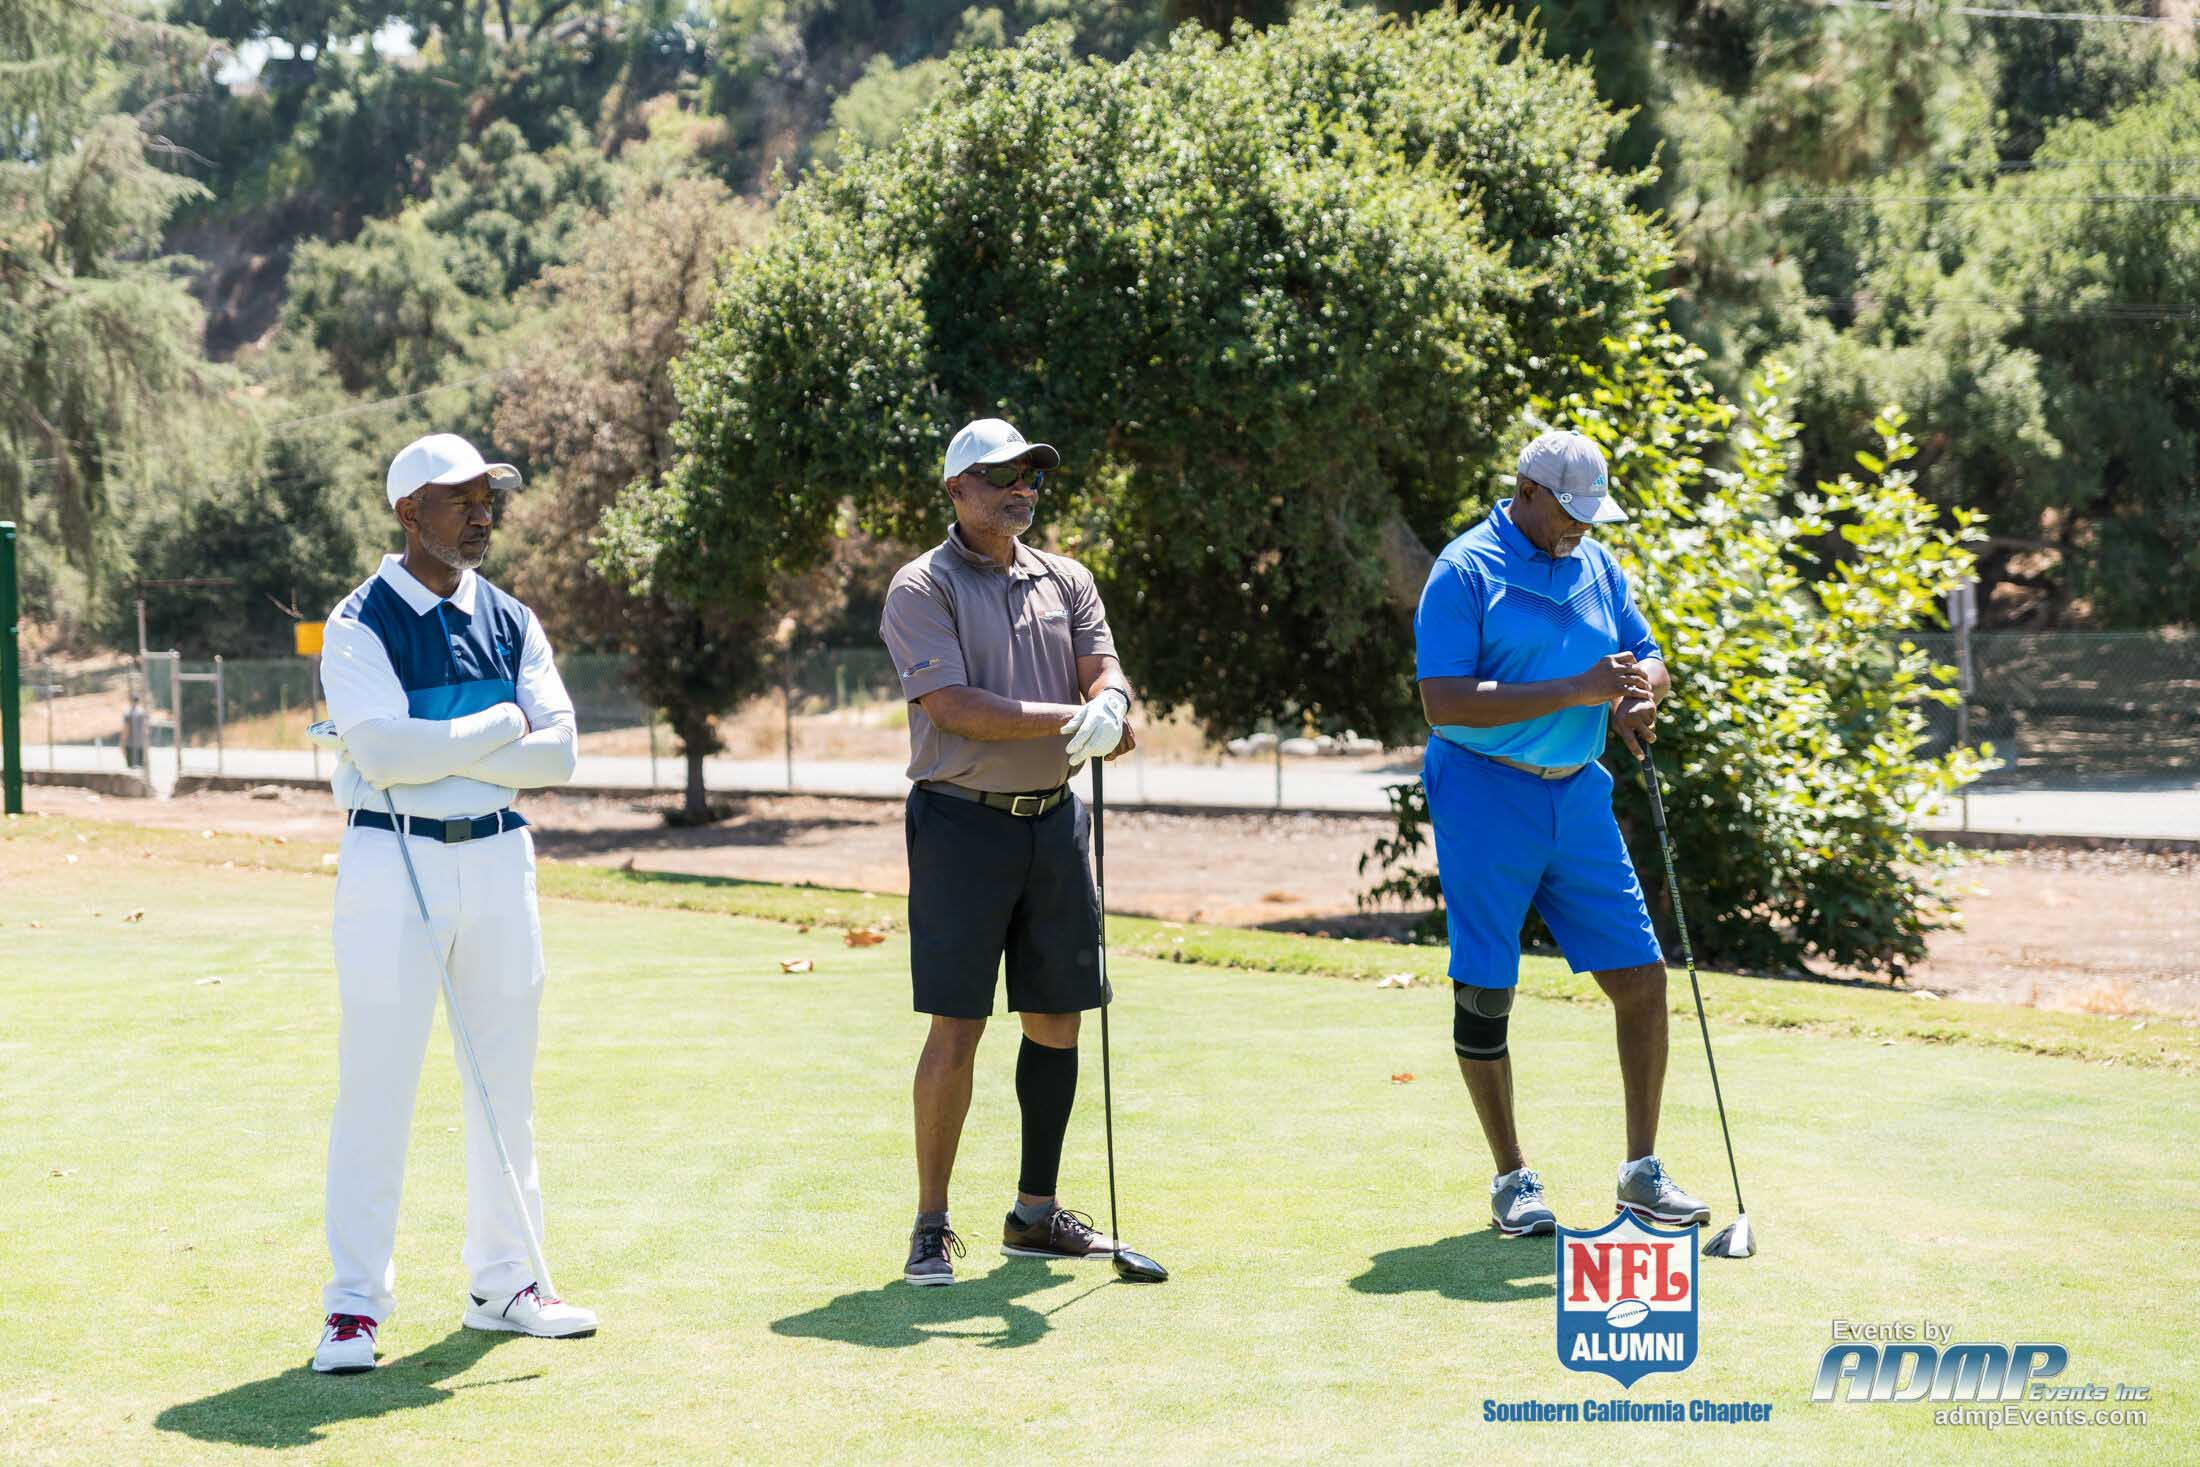 NFL Alumni Golf Tournament Pics 08_12_19-176